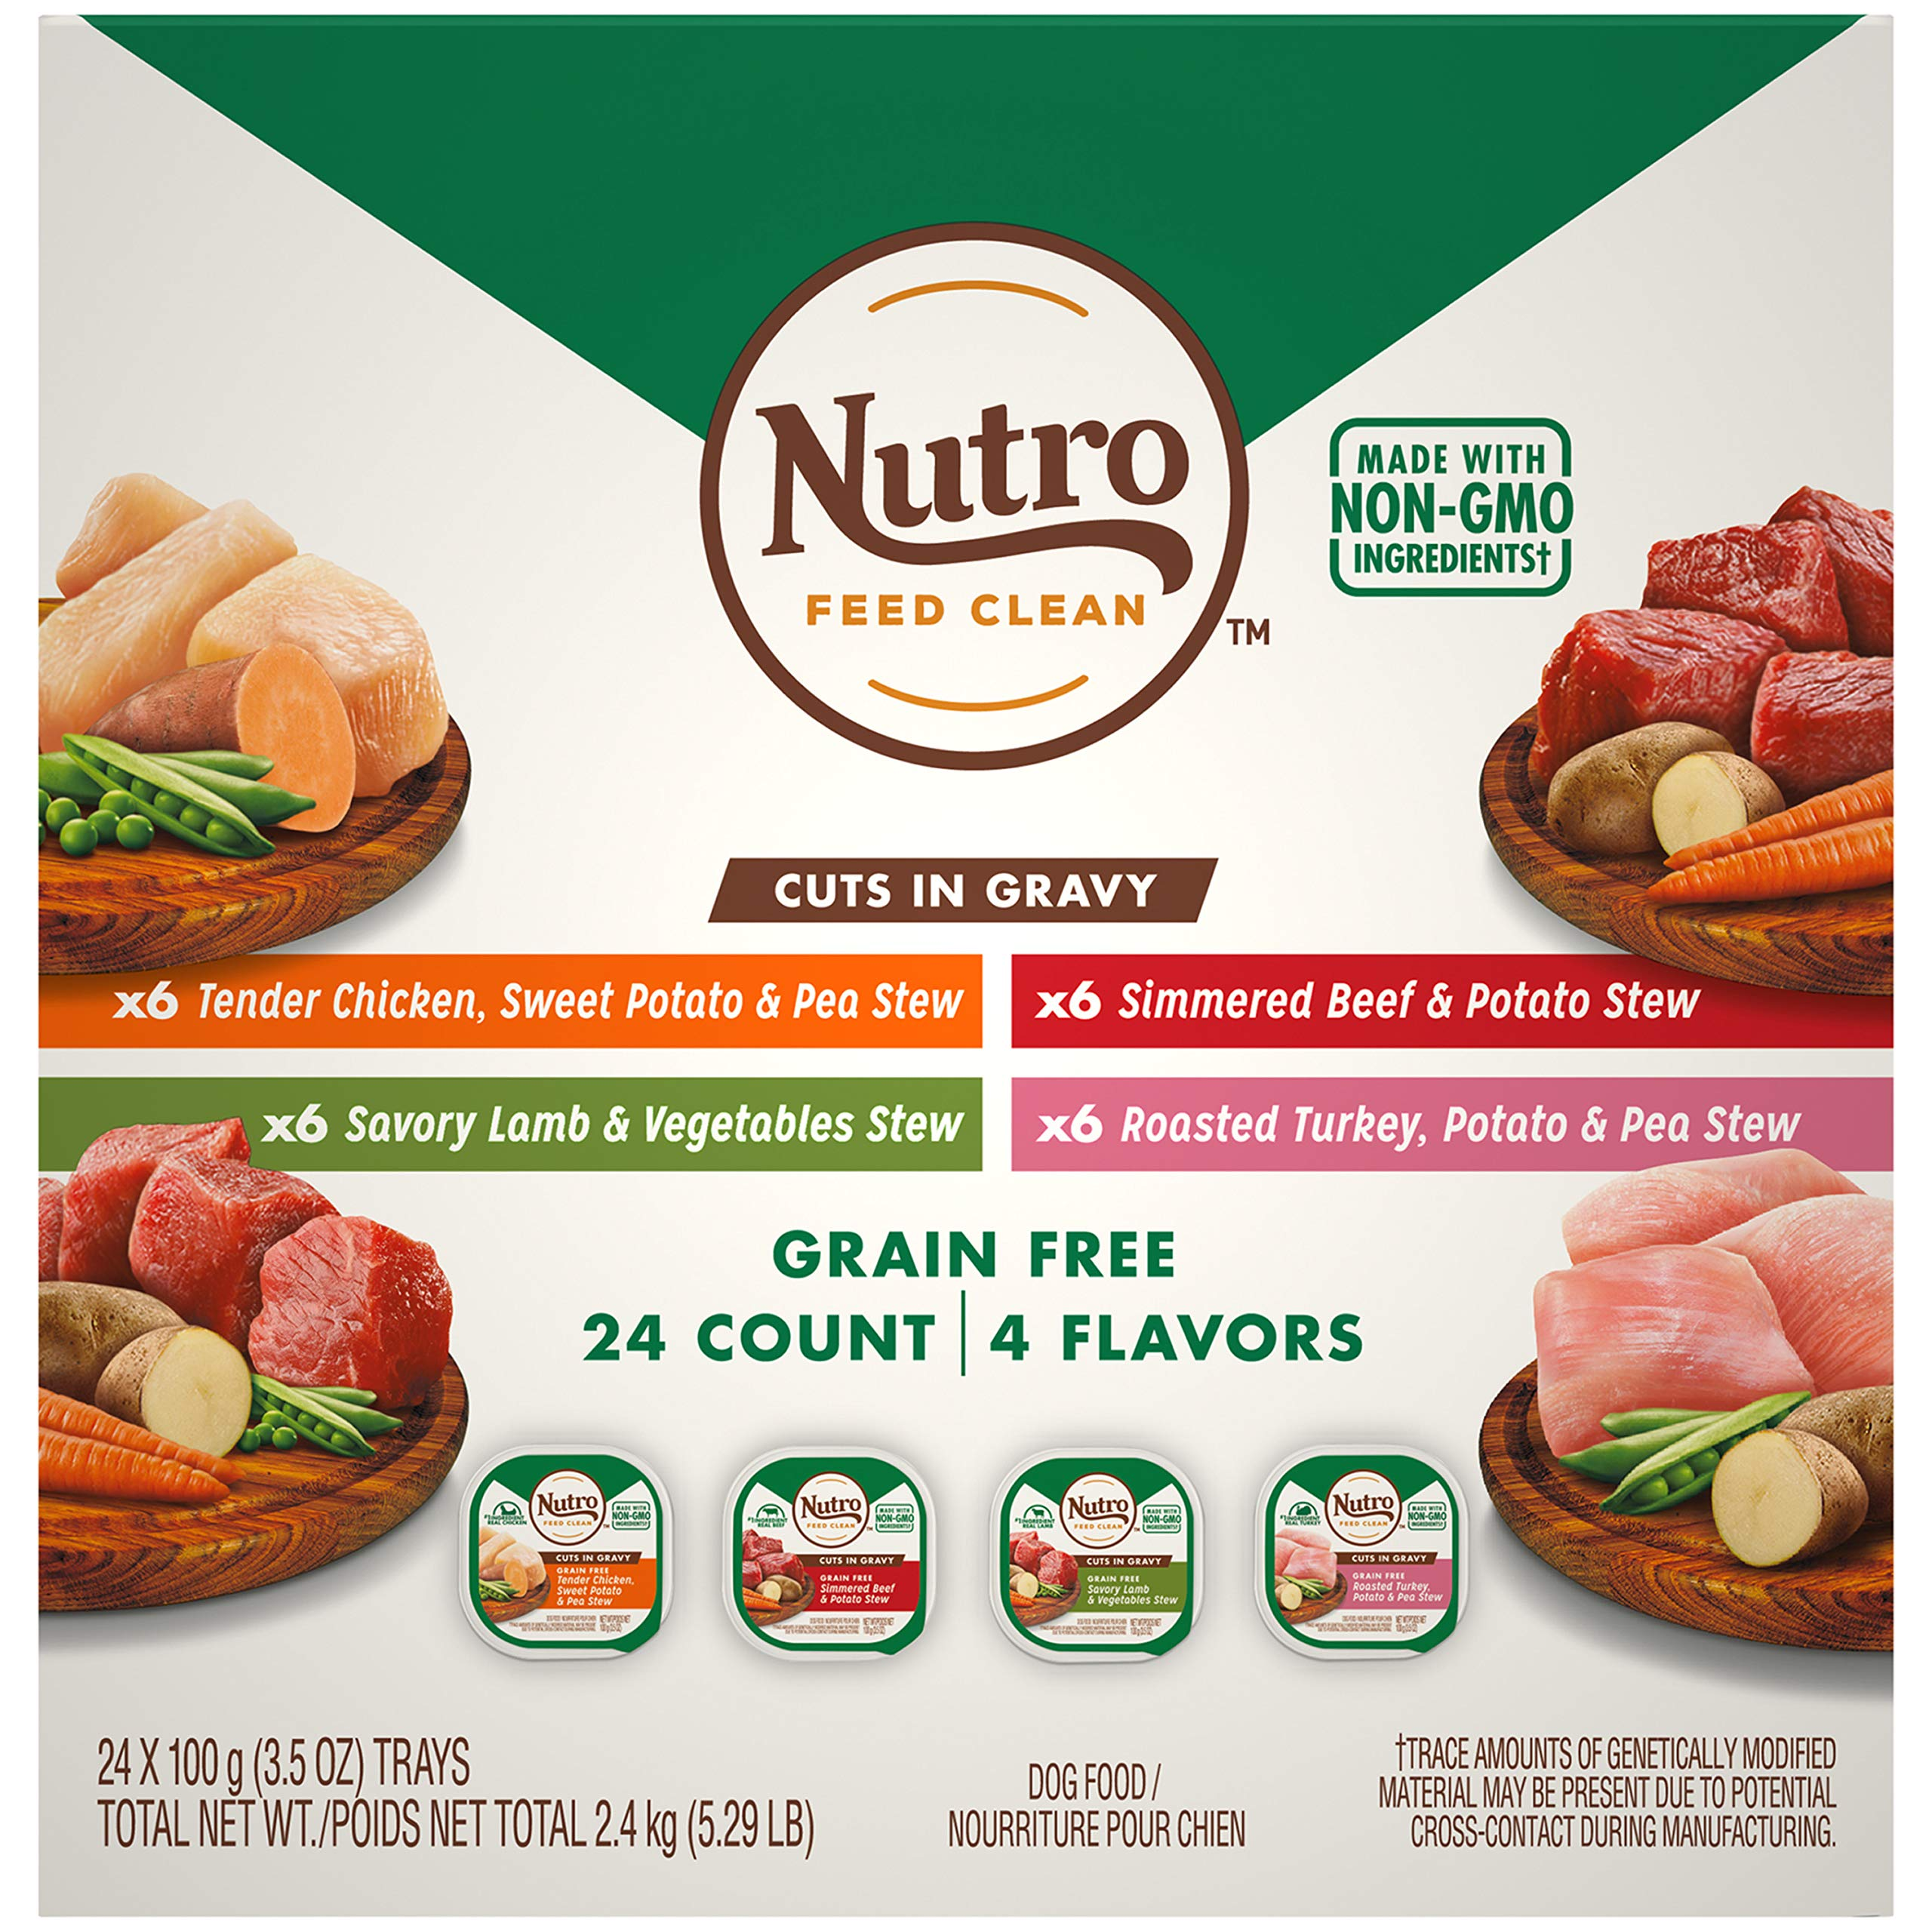 NUTRO Adult High Protein Natural Grain Free Wet Dog Food Cuts in Gravy Beef, Lamb, Chicken, and Turkey Variety Pack, (24) 3.5 oz. Trays by Nutro